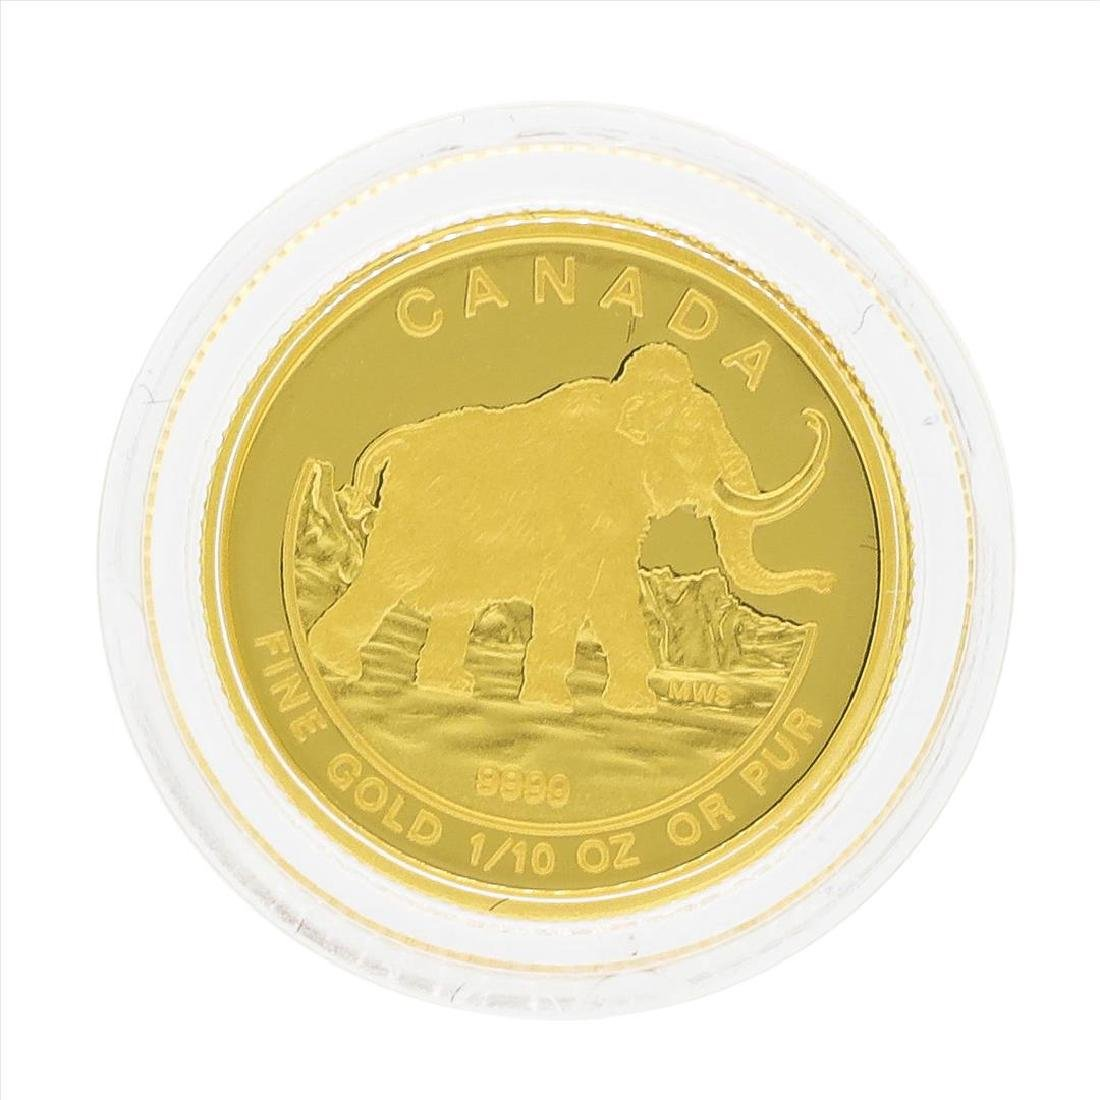 2014 $5 Canada 1/10 oz Woolly Mammoth Gold Coin - 2